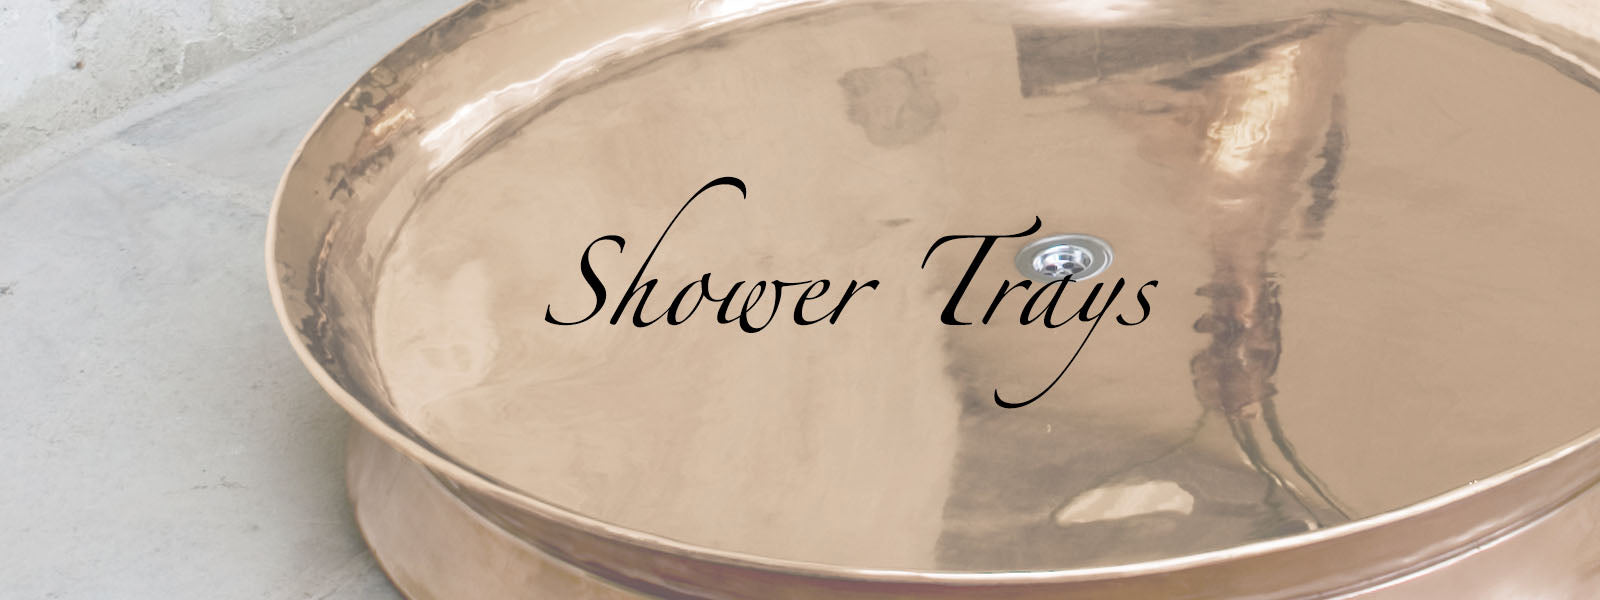 Copper Shower Trays